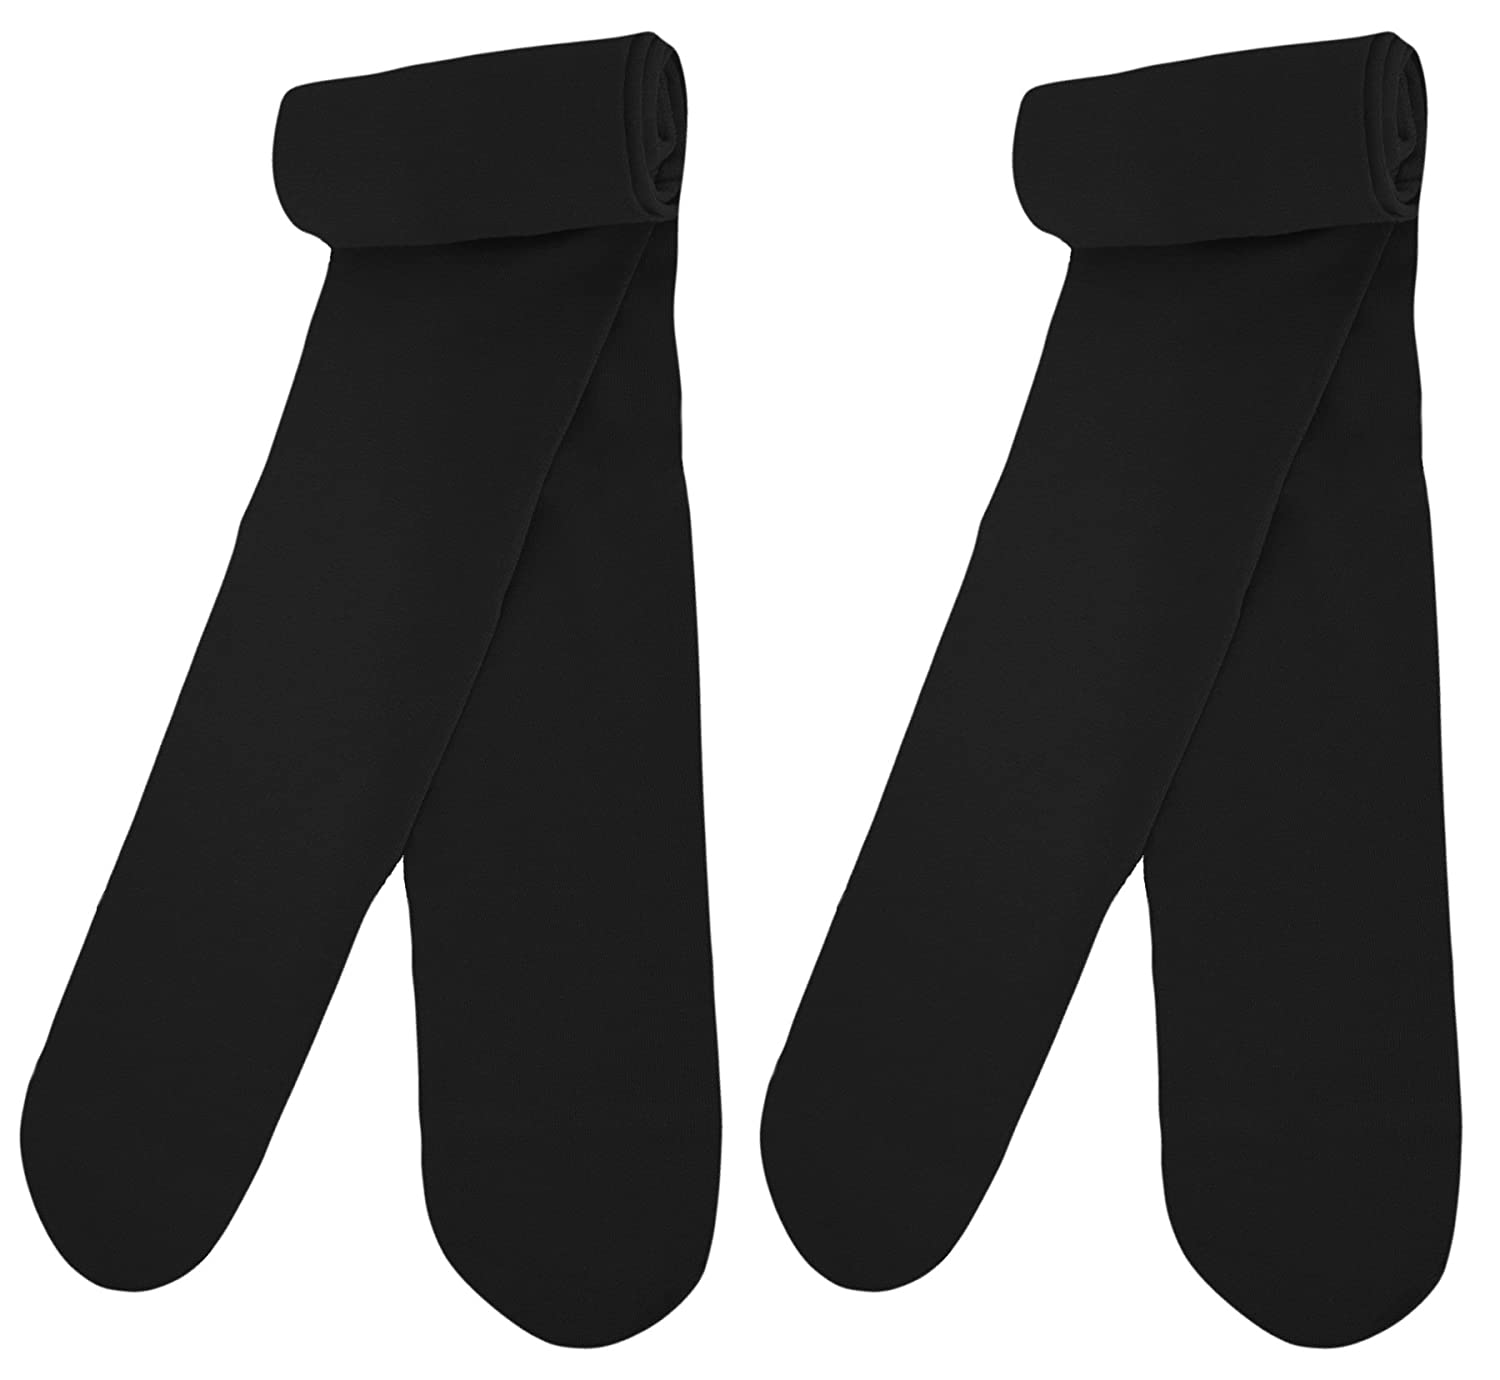 Country Kids Girls Smooth Microfiber Opaque Footed School Ballet Dance Dress Stocking Tights Pack of 2